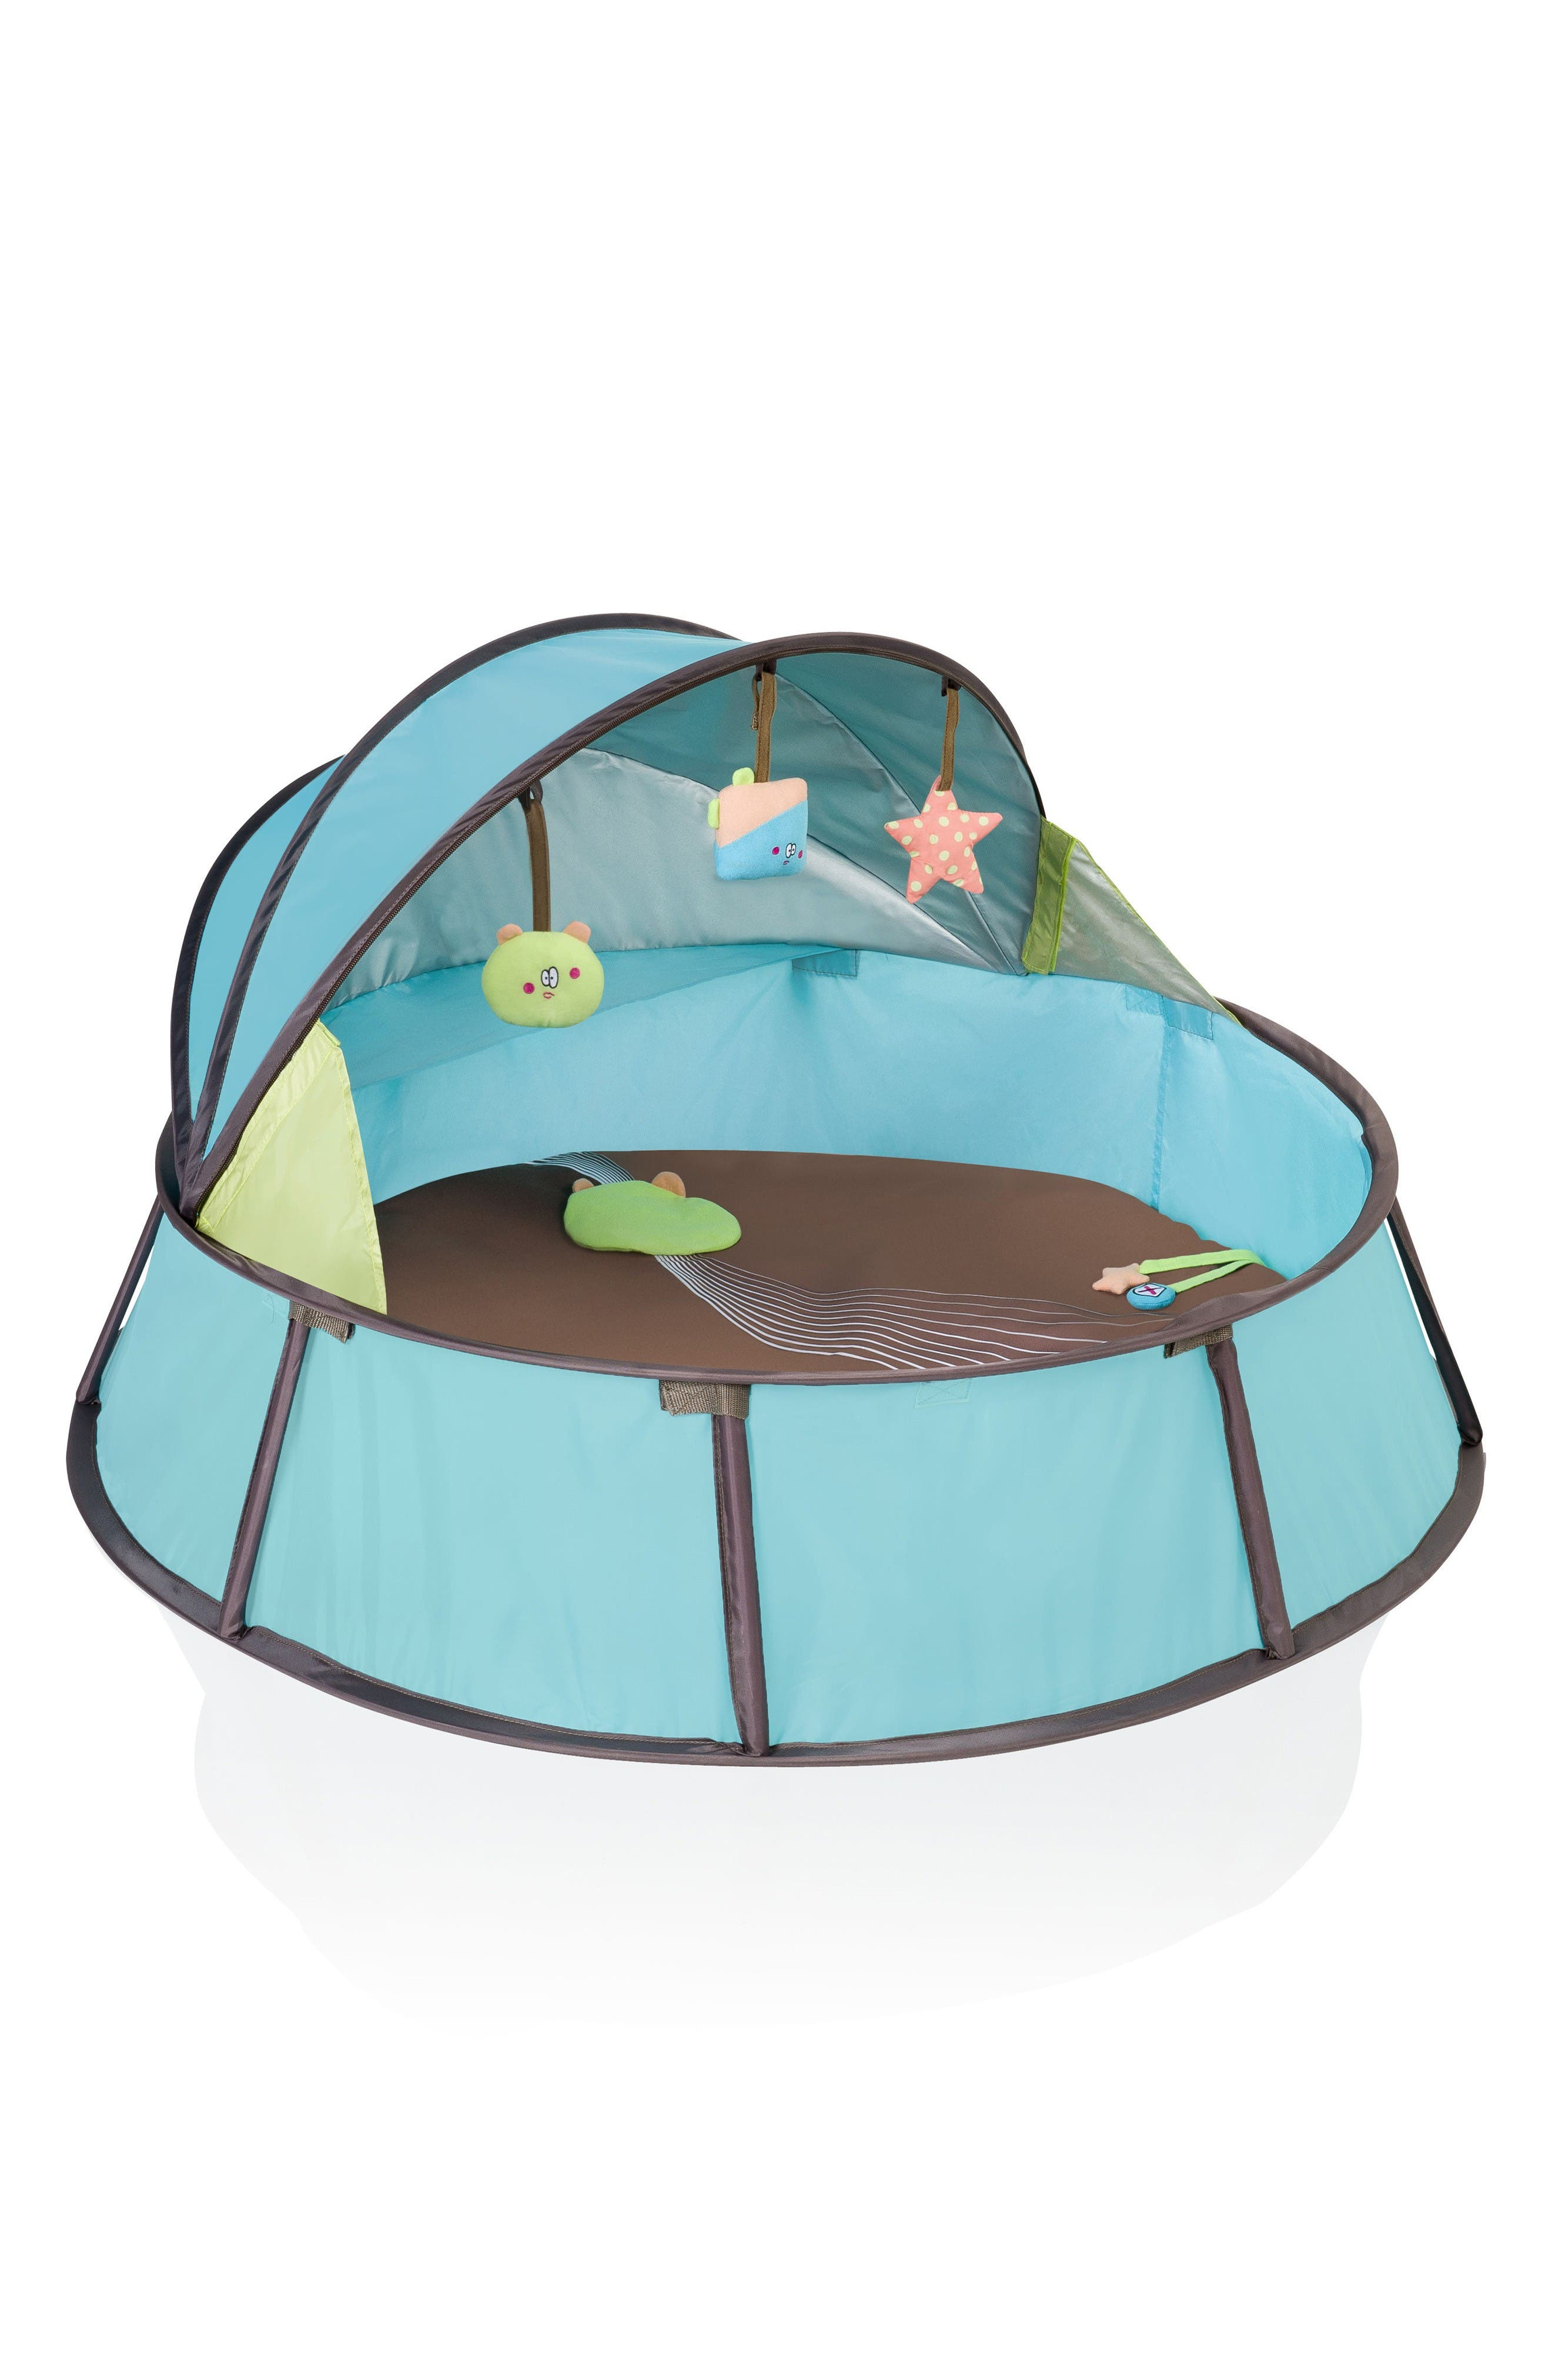 Babyni Premium Pop-Up Play Pen,                         Main,                         color, Blue Green